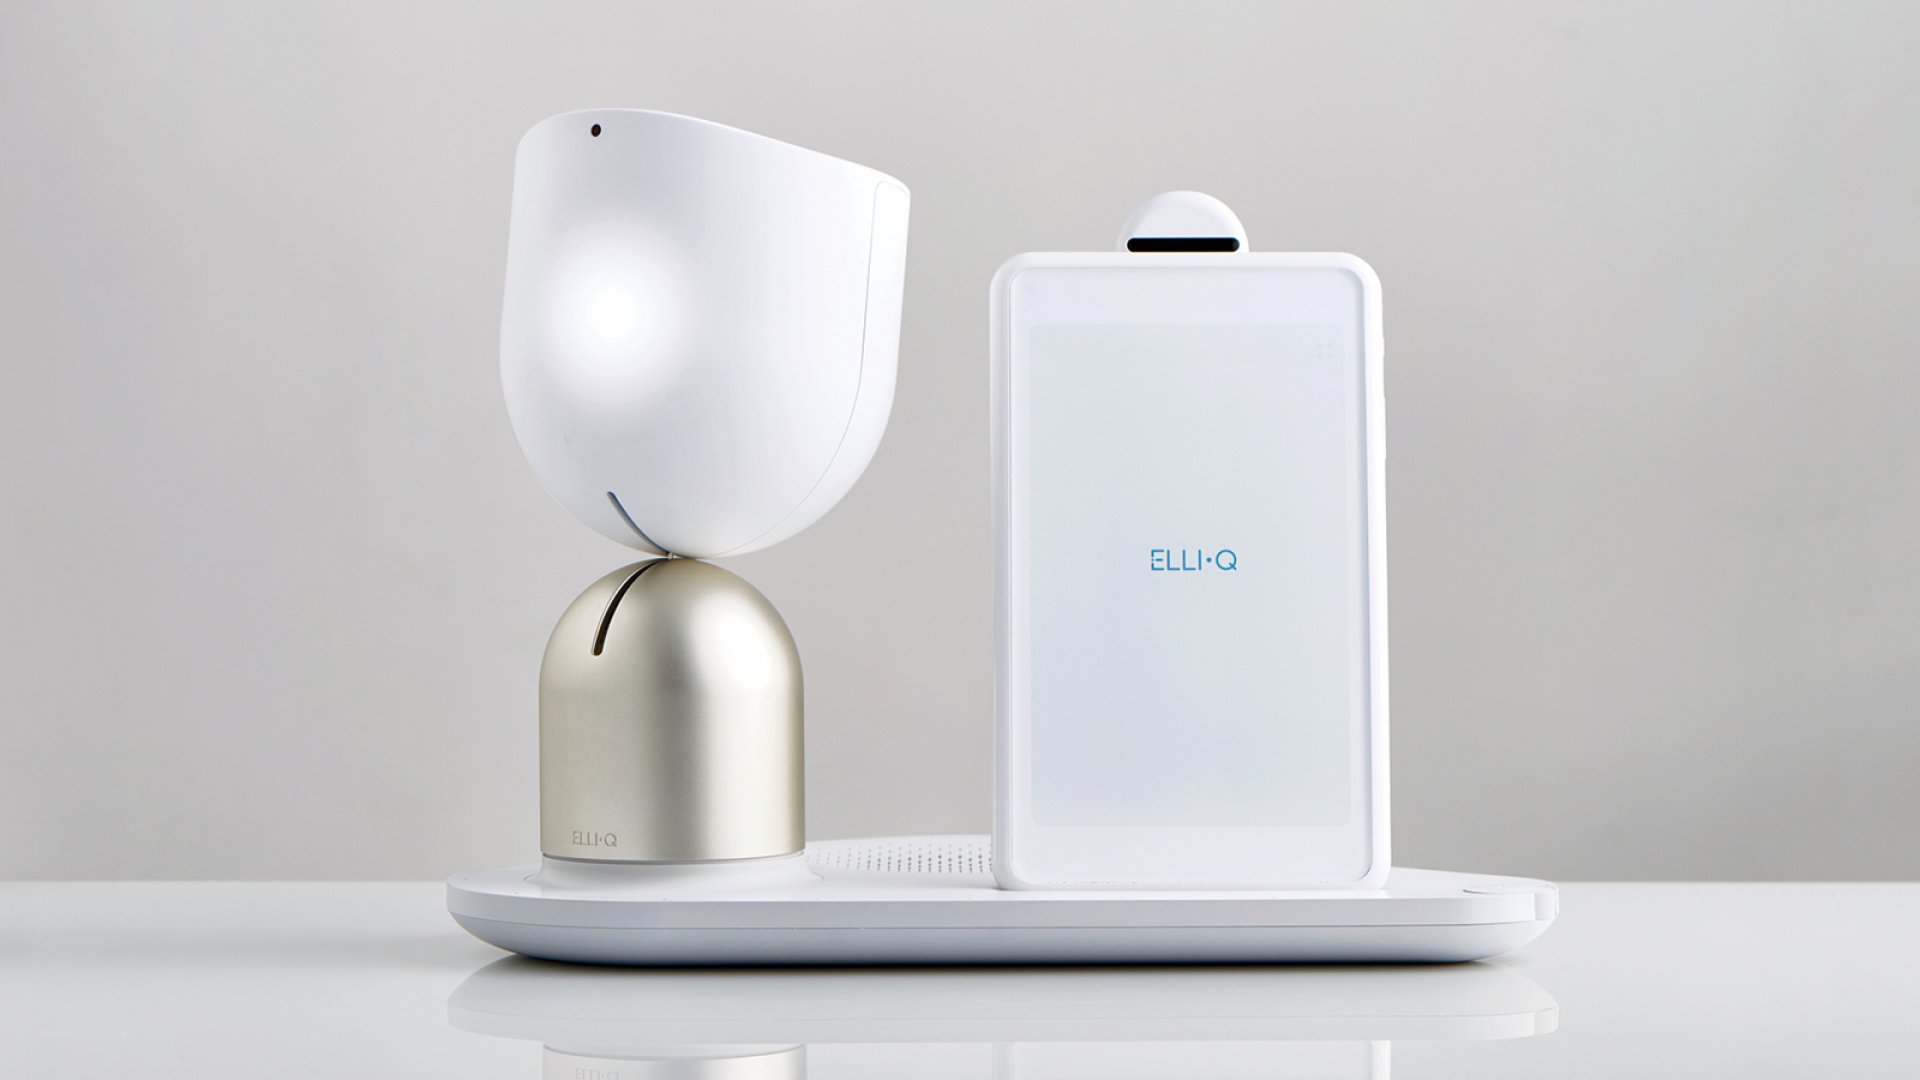 To make ElliQ friendly for seniors, the designers thought more <i>Toy Story</i> and less <i>Transformers</i>.